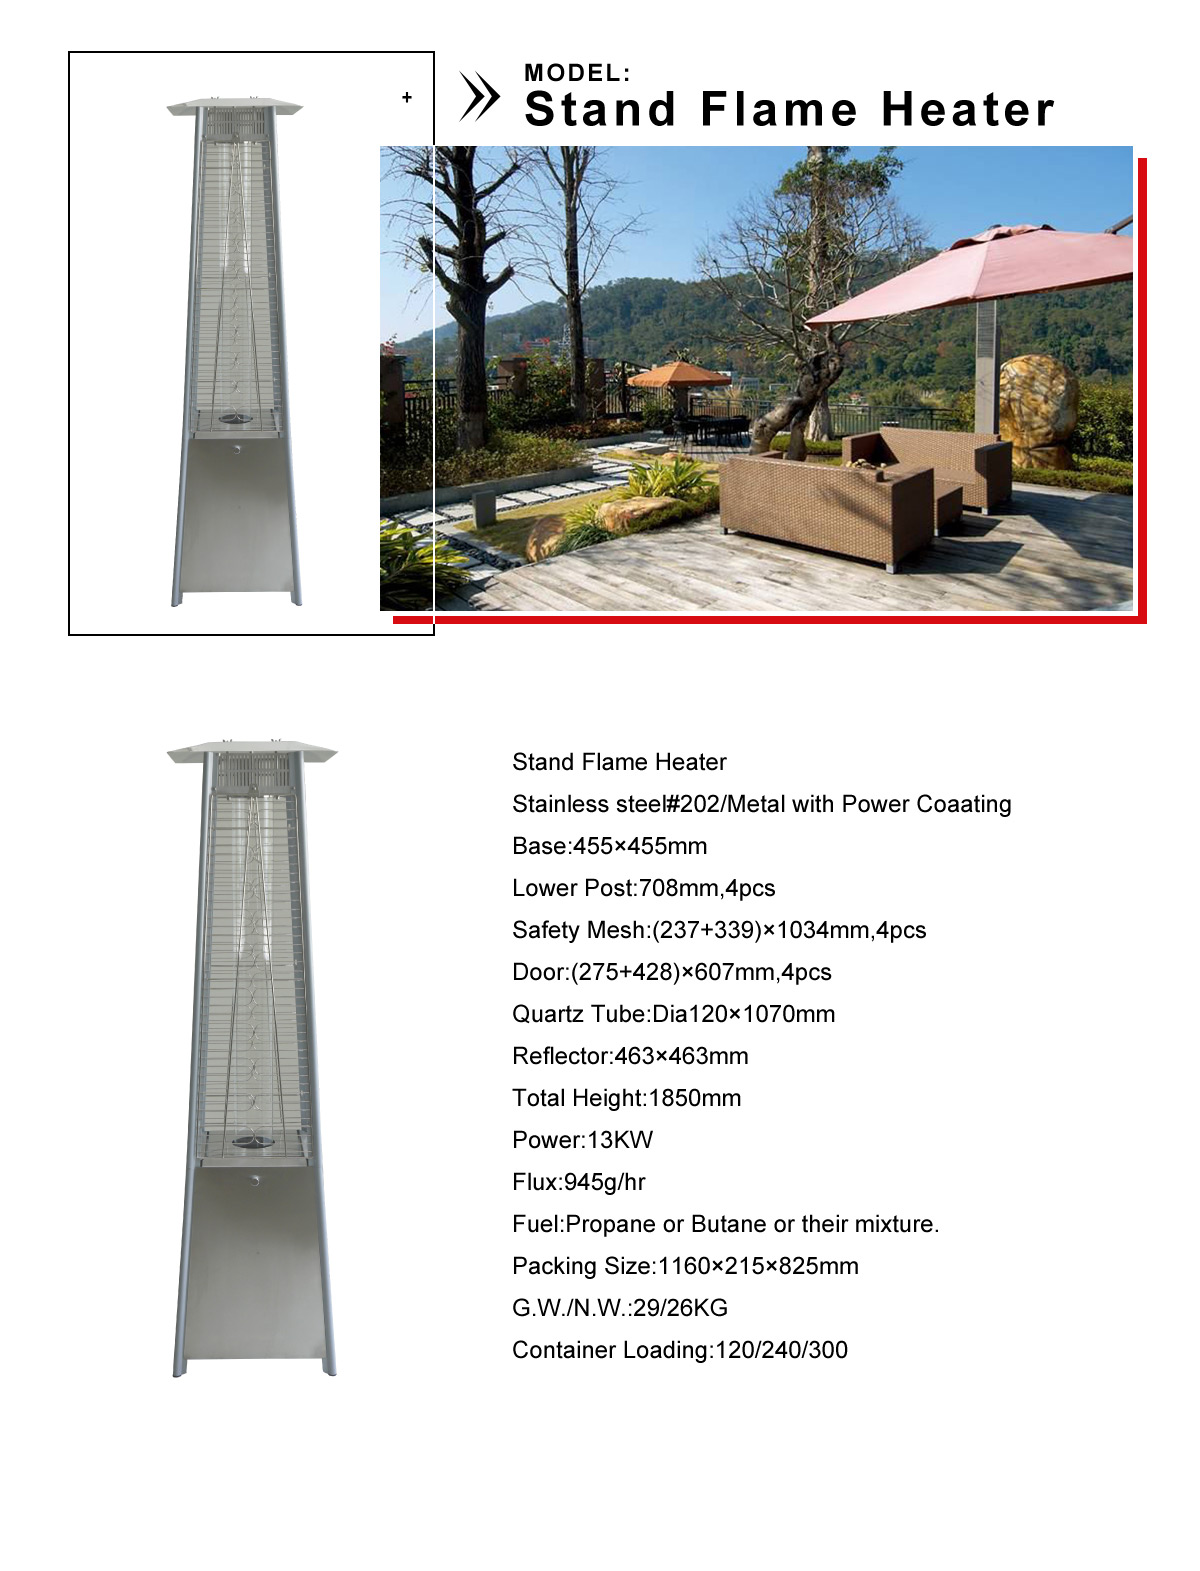 Stand Flame Heater Portable Patio Heater Gardensun